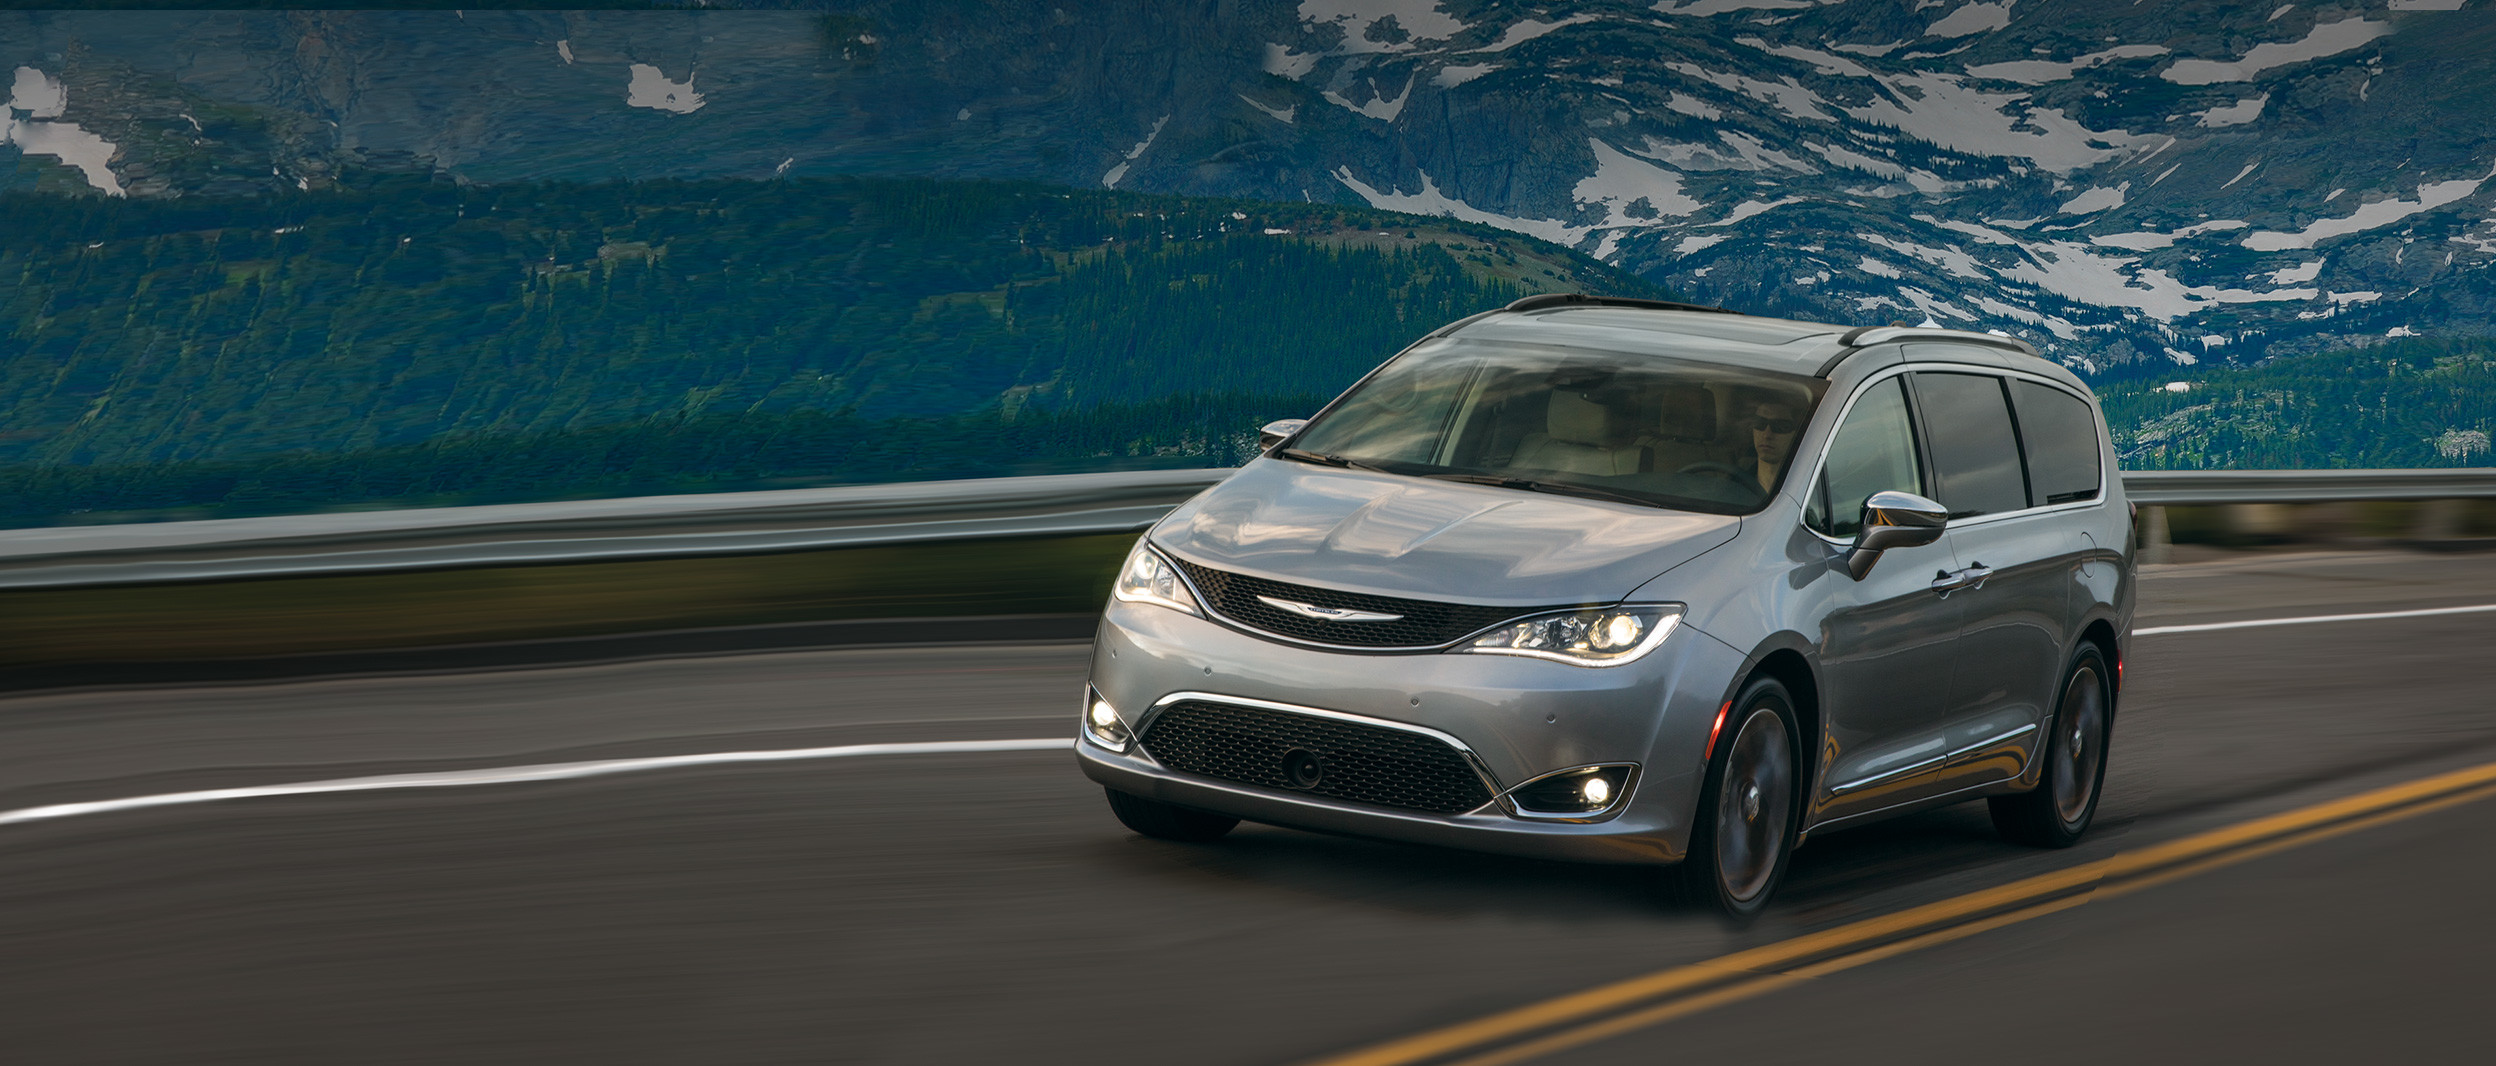 Chrysler Pacifica 2018 Exterior Billet Metallic